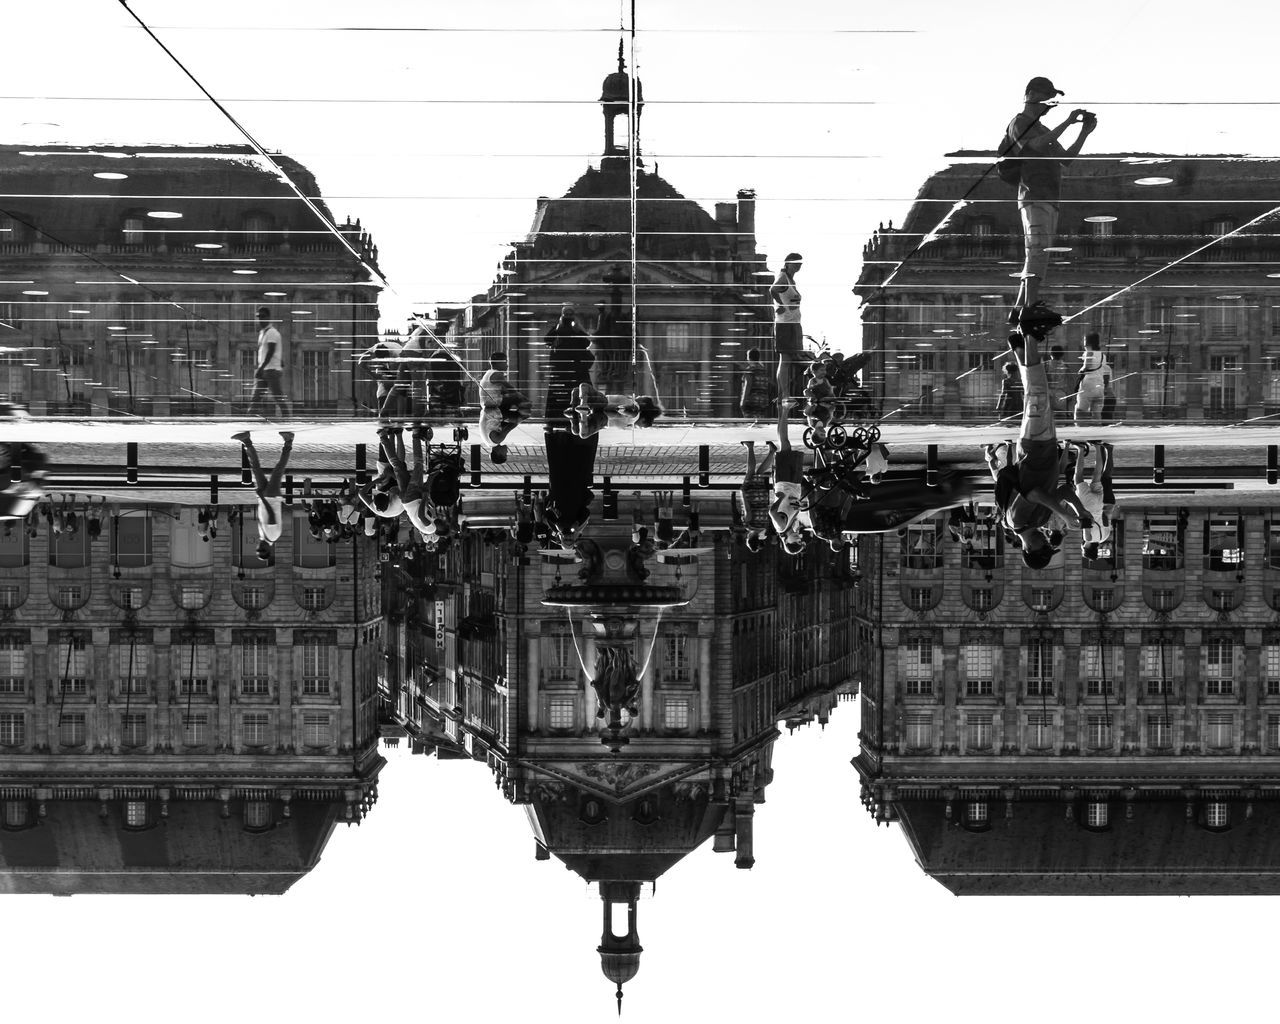 Architecture Blackandwhite Bordeaux Building Exterior Built Structure Cool EyeEm EyeEm Best Shots EyeEm Gallery Fine Art Photography France Fresh On Eyeem  Holiday Large Group Of People Reflection Street Streetphotography This Week On Eyeem Tourism Tourist Tourist Attraction  Upside Down Vacation Water